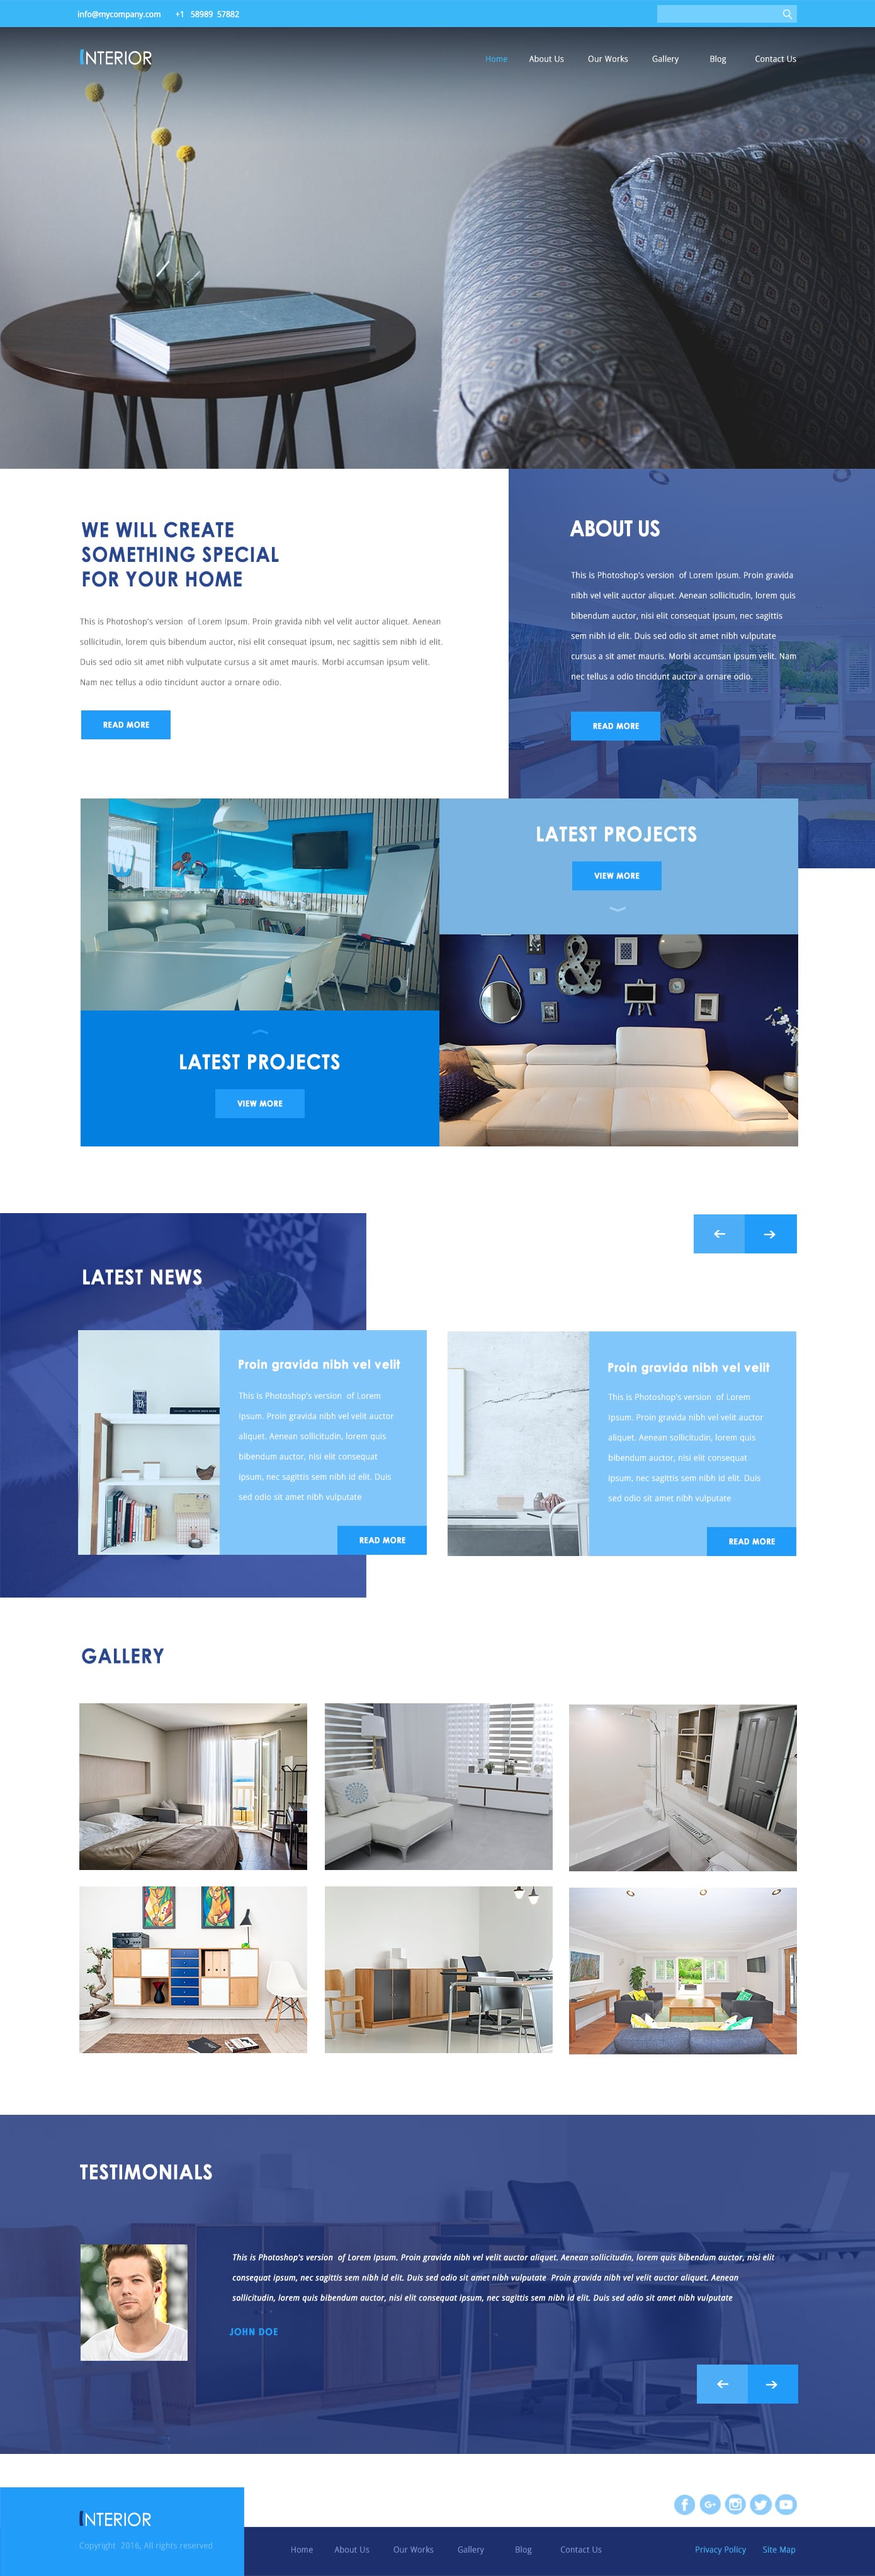 interior designing template